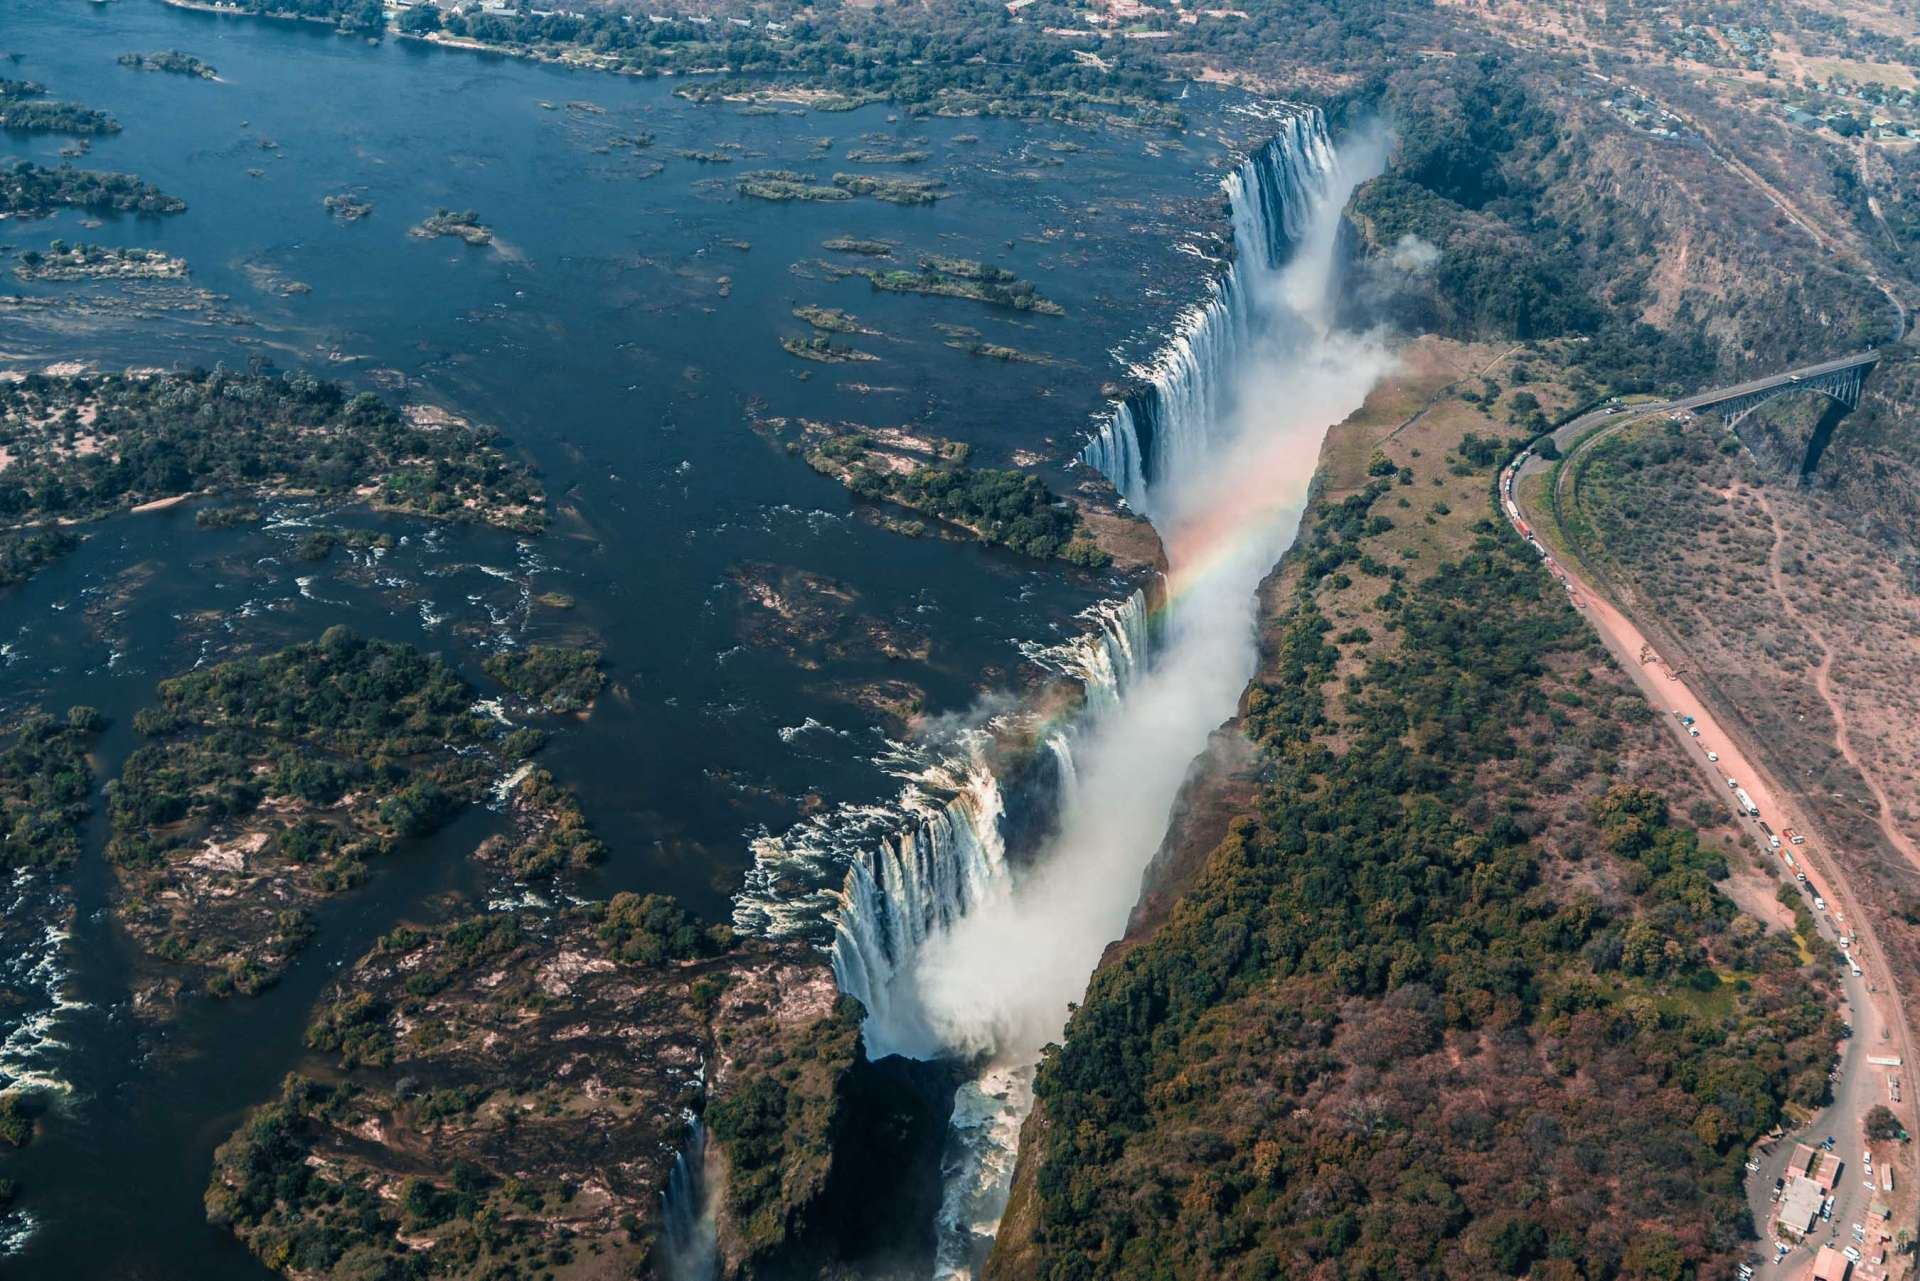 Victoria Falls Zimbawe Enrico Pescantini Flight of Angels Helicopter Tour From Above Aerial